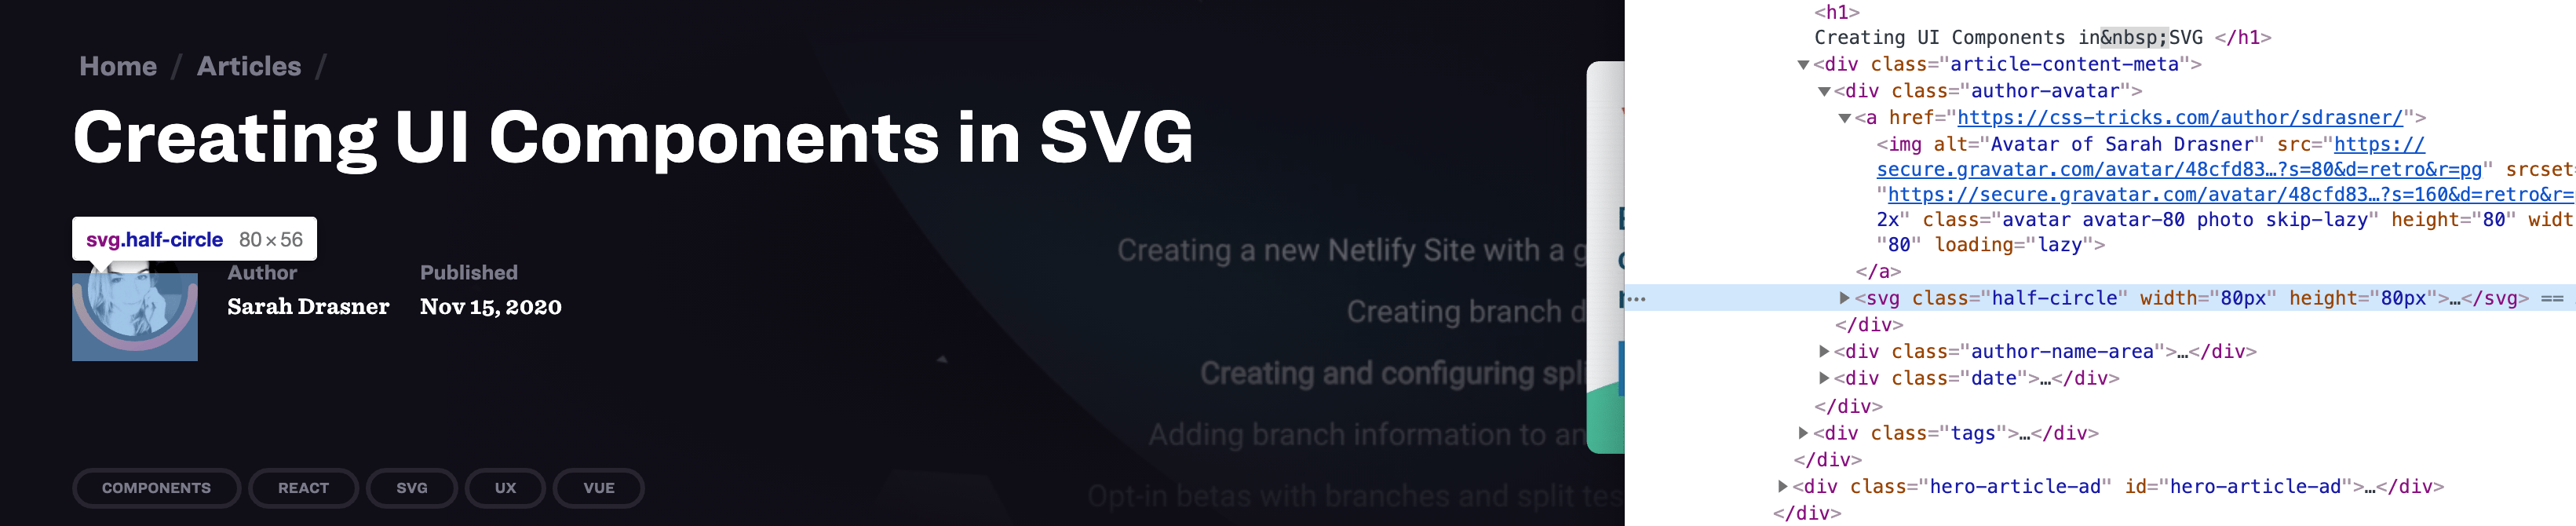 Creating UI Components in SVG